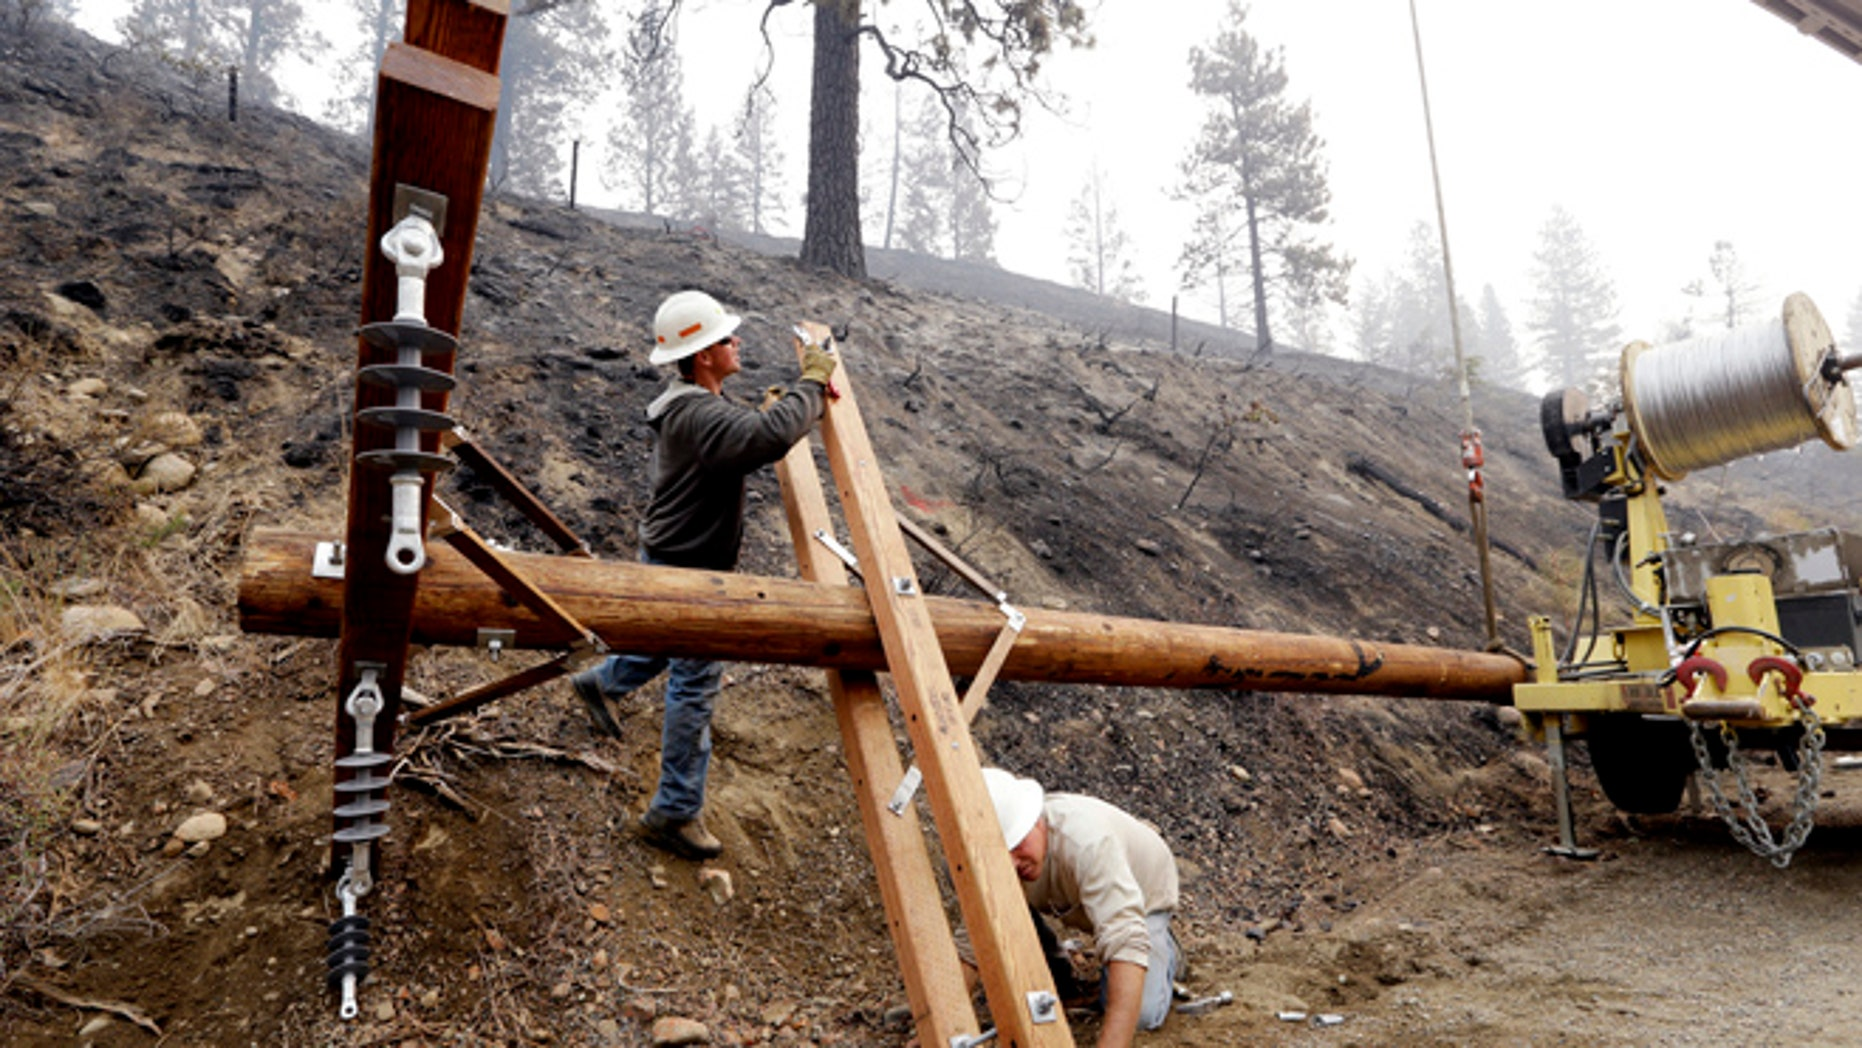 Aug. 23, 2015: Utility workers Chris Zahn, left, and Dan Foussard work to assemble a new pole to replace one of about 50 that burned down along Twisp River Road in a wildfire days earlier in Twisp, Wash.